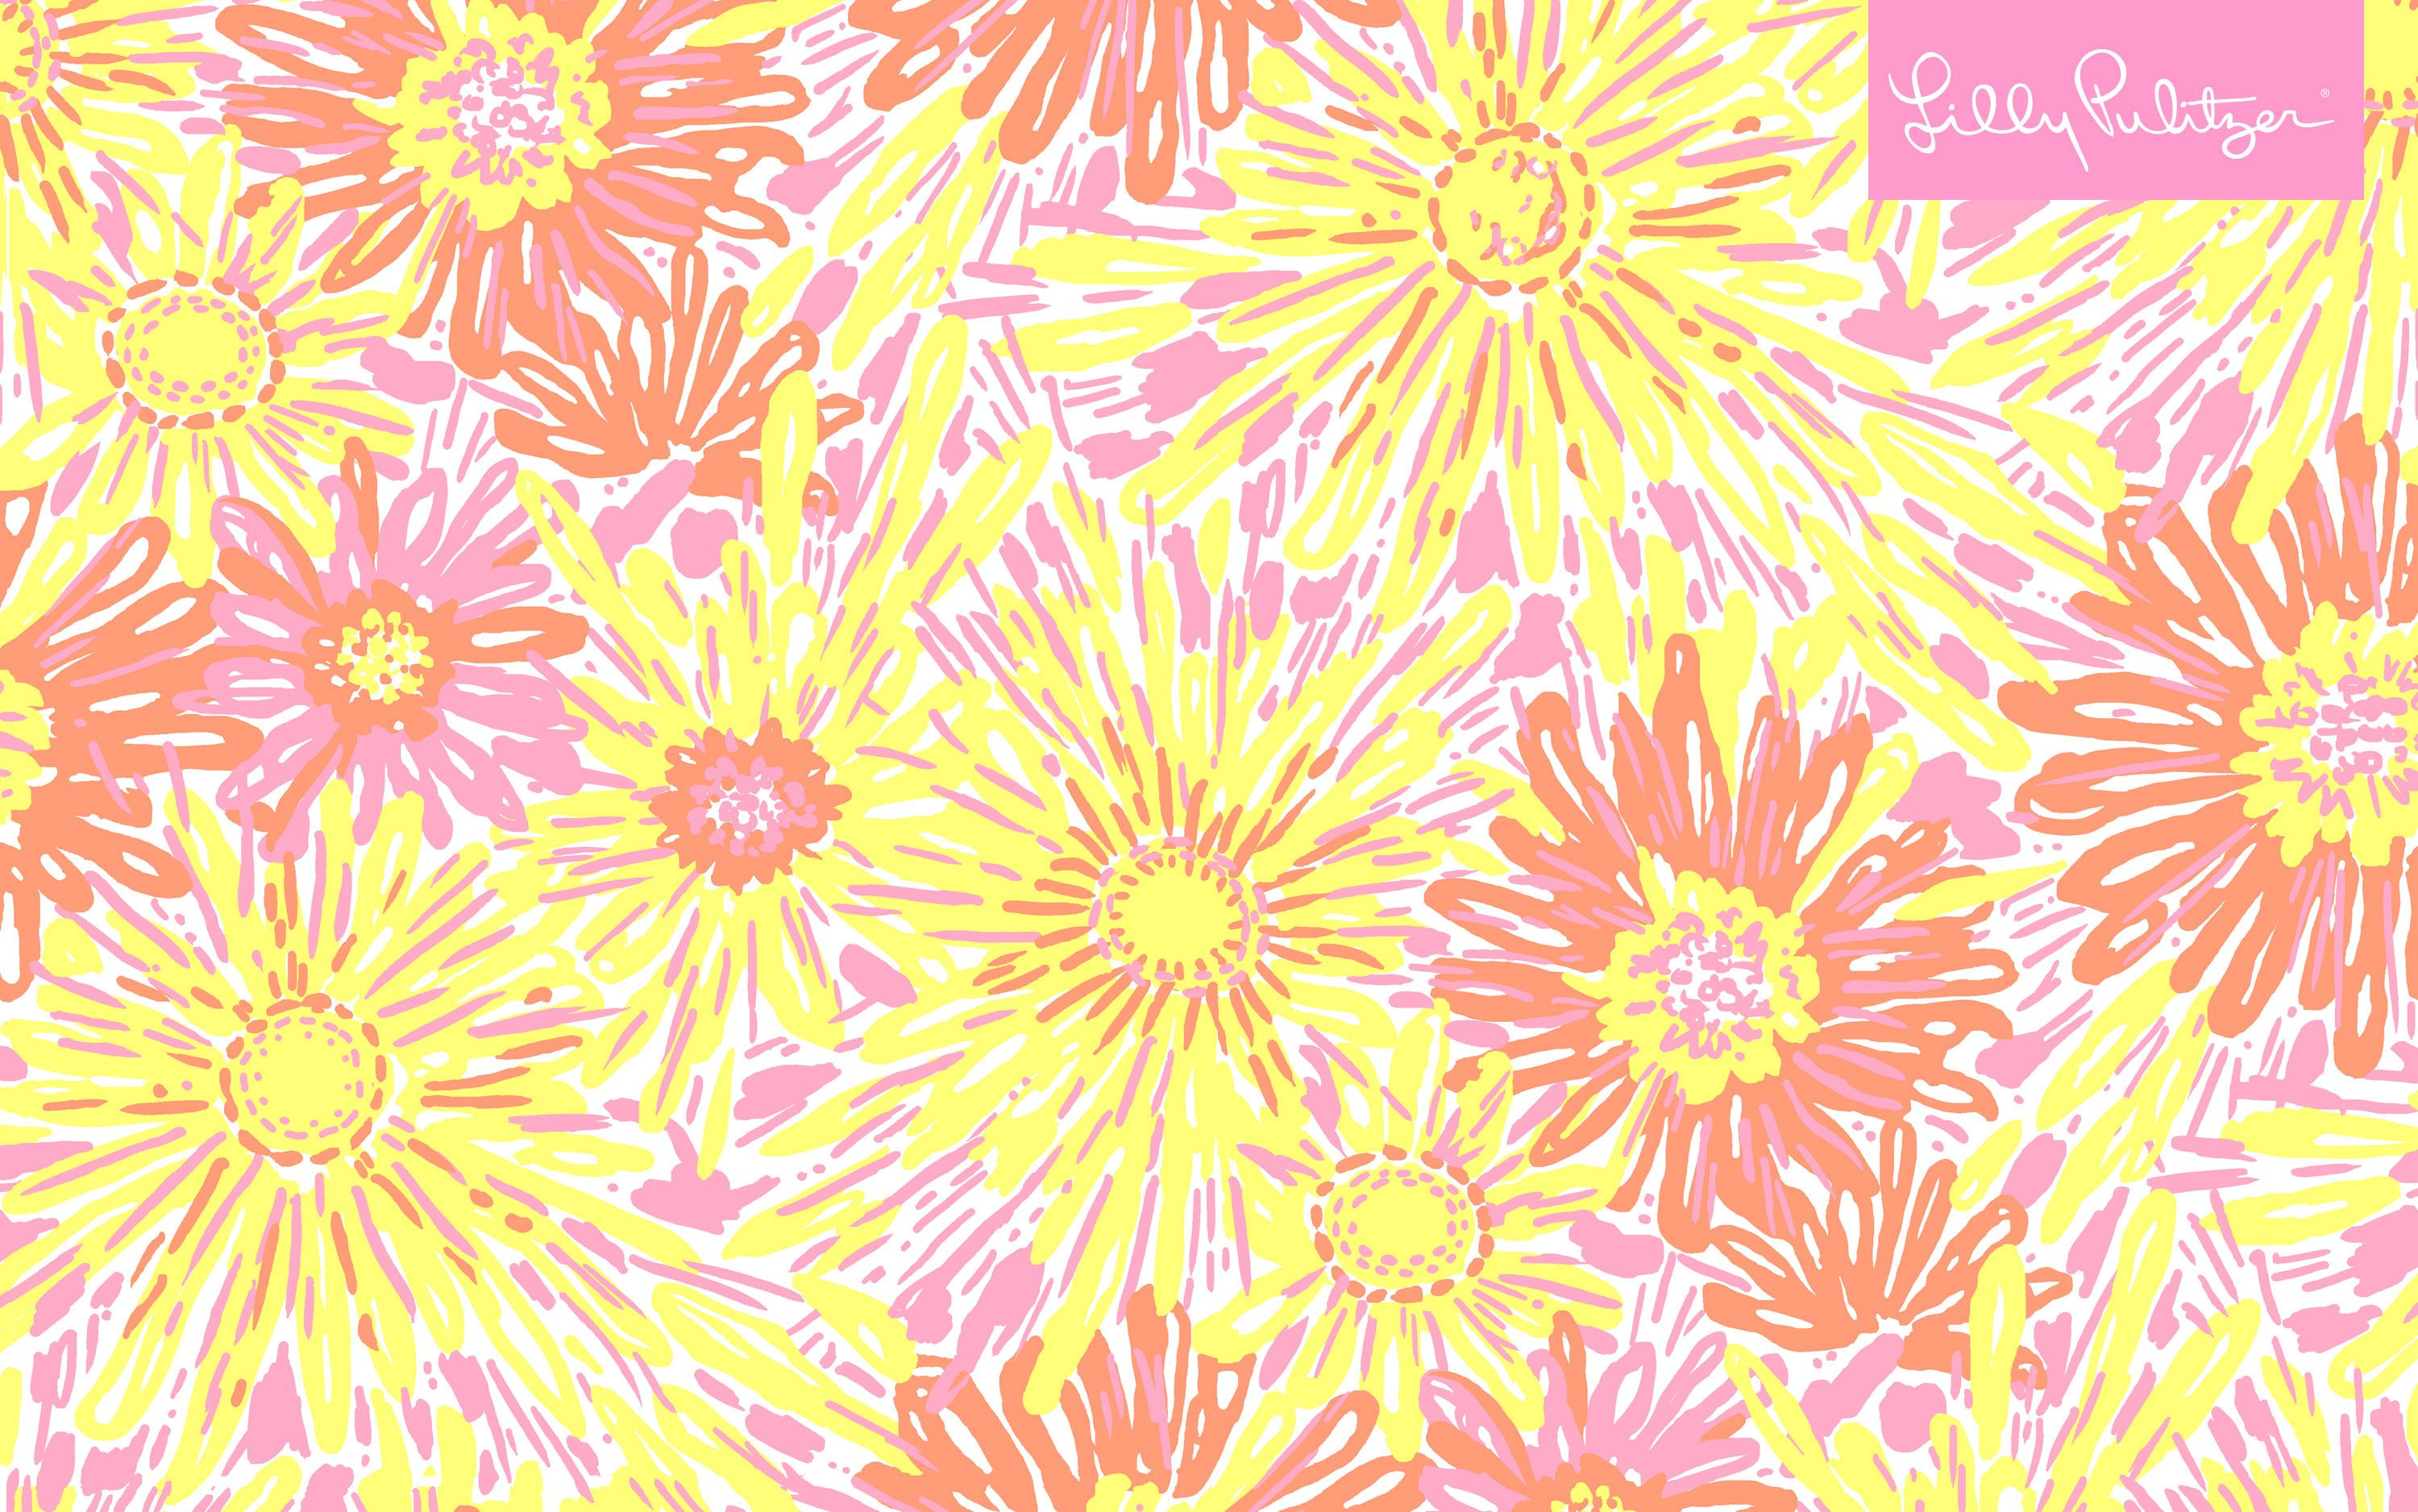 Sunkissed Wallpaper Jpg 3000 1876 Lilly Pulitzer Prints Wallpaper Pretty Wallpapers